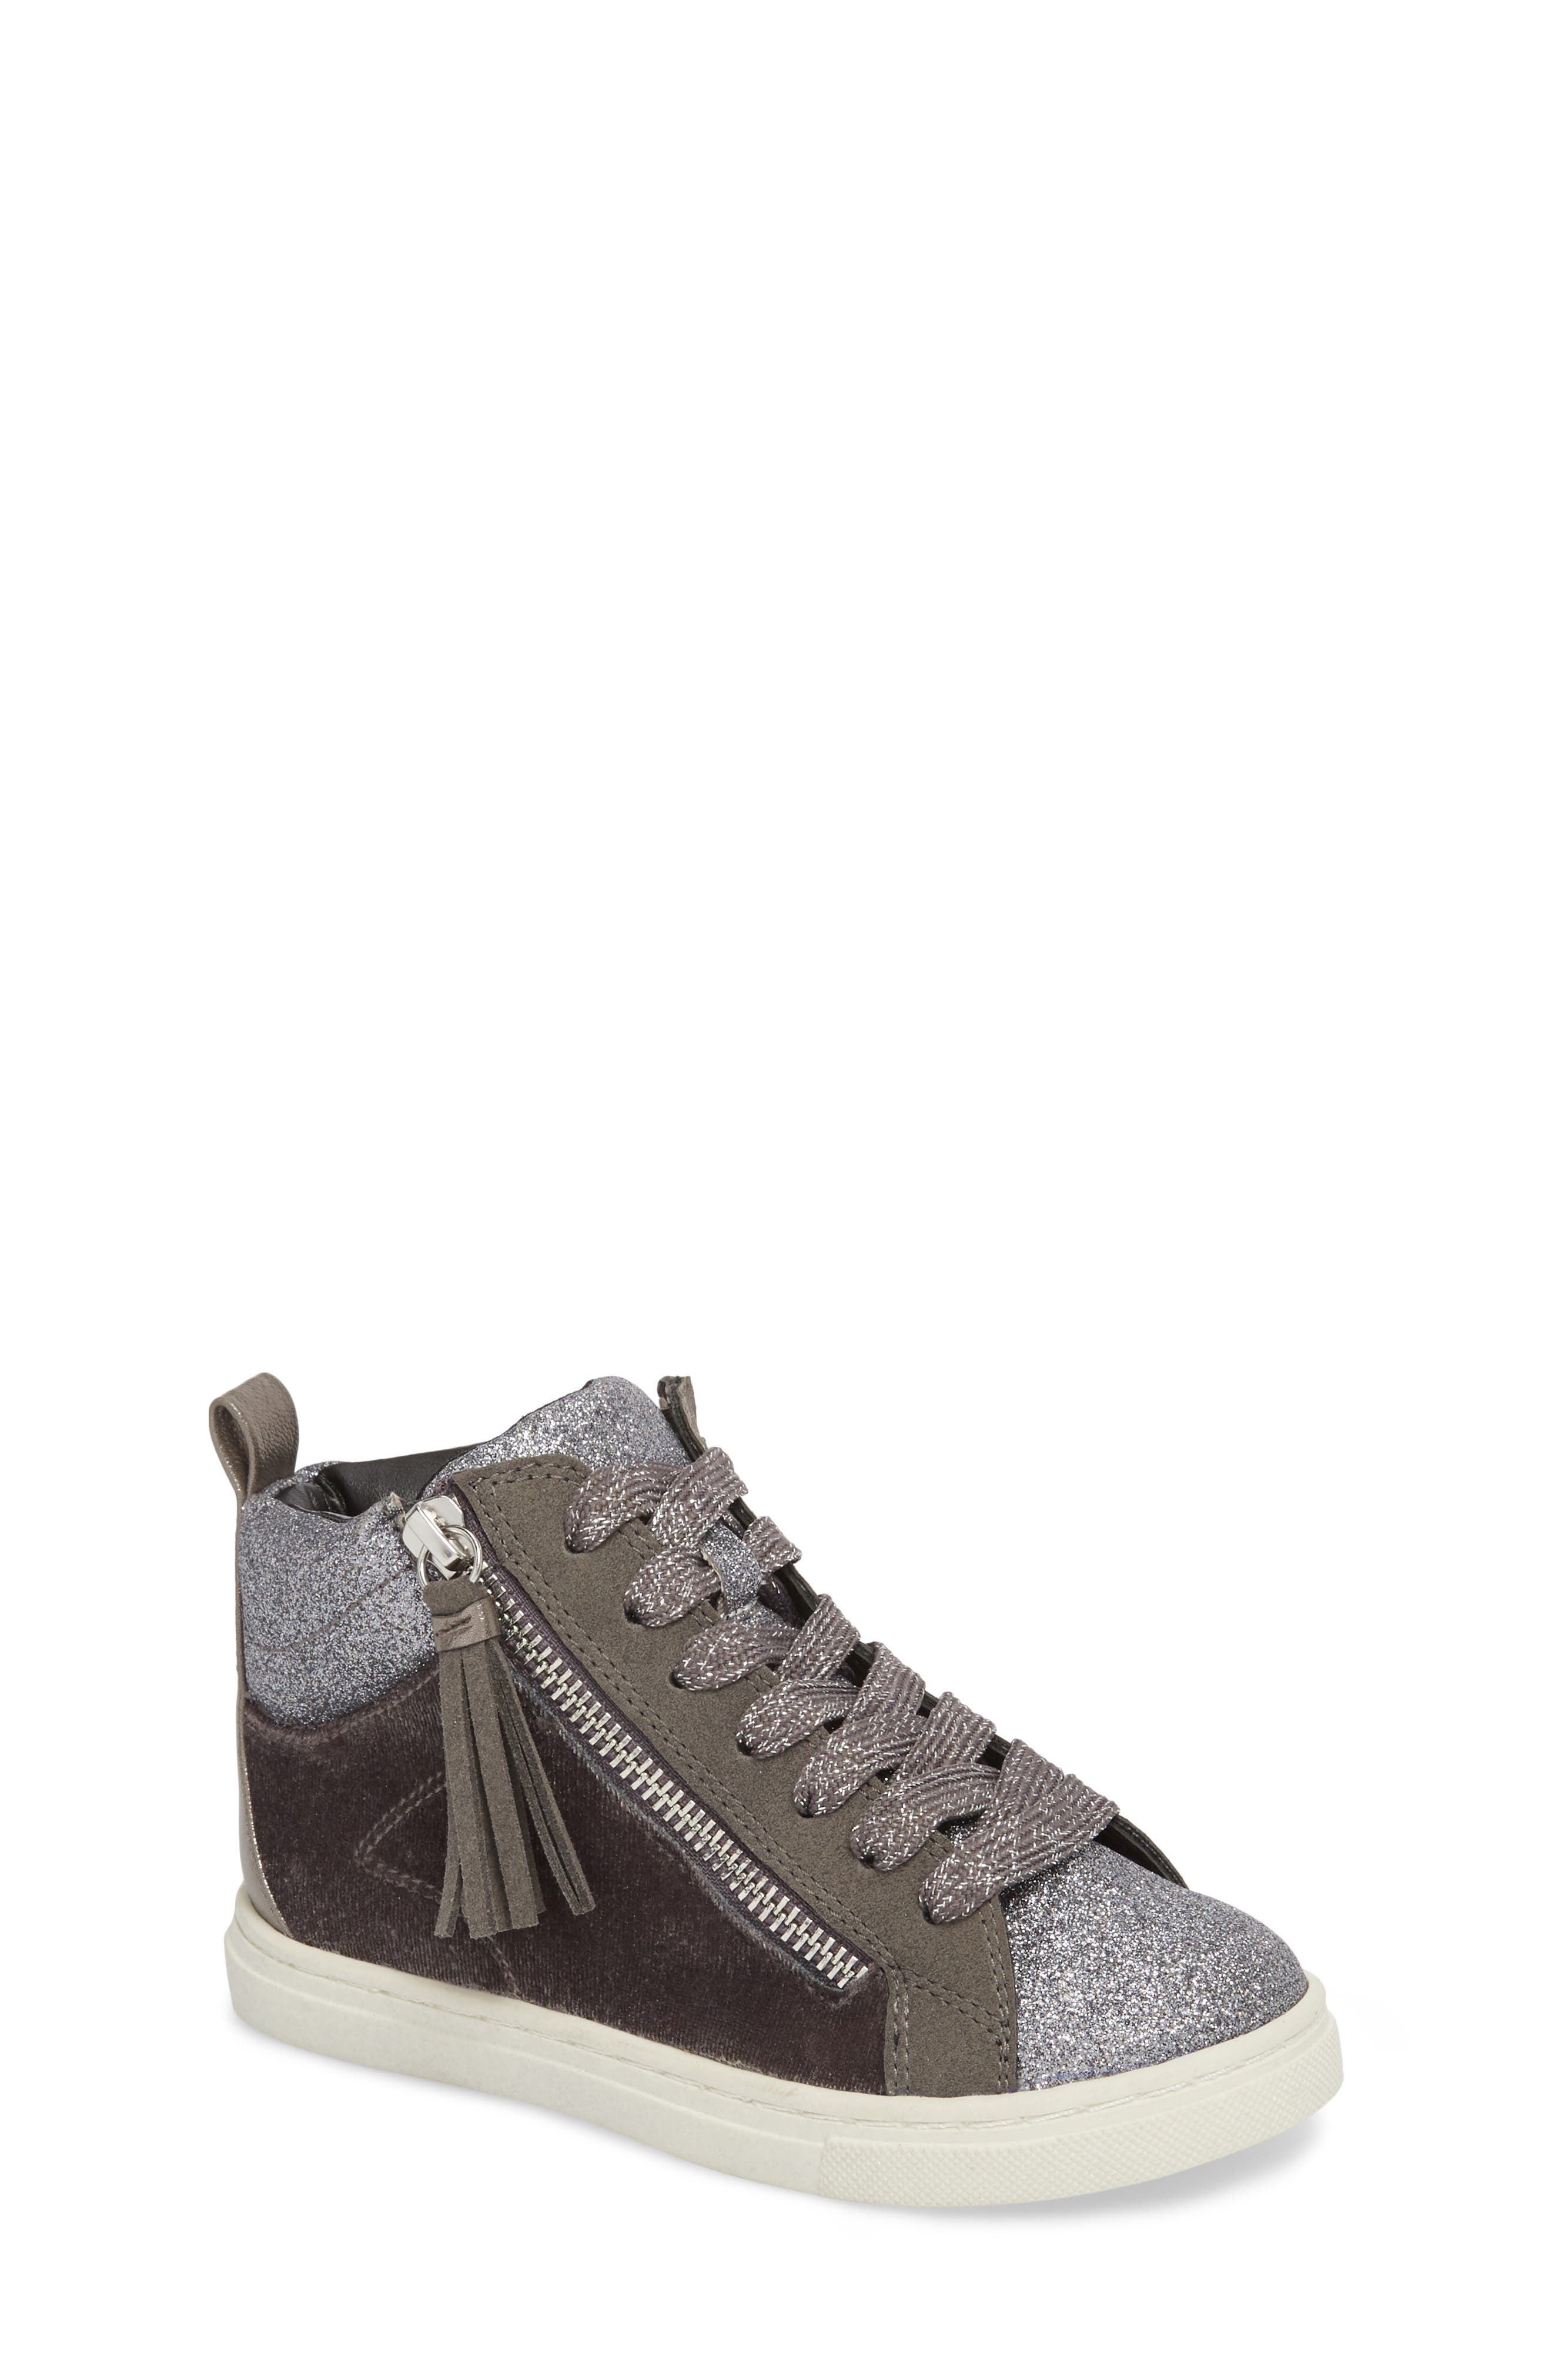 DOLCE VITA Zaila Glitter High Top Sneaker, Main, color, 034